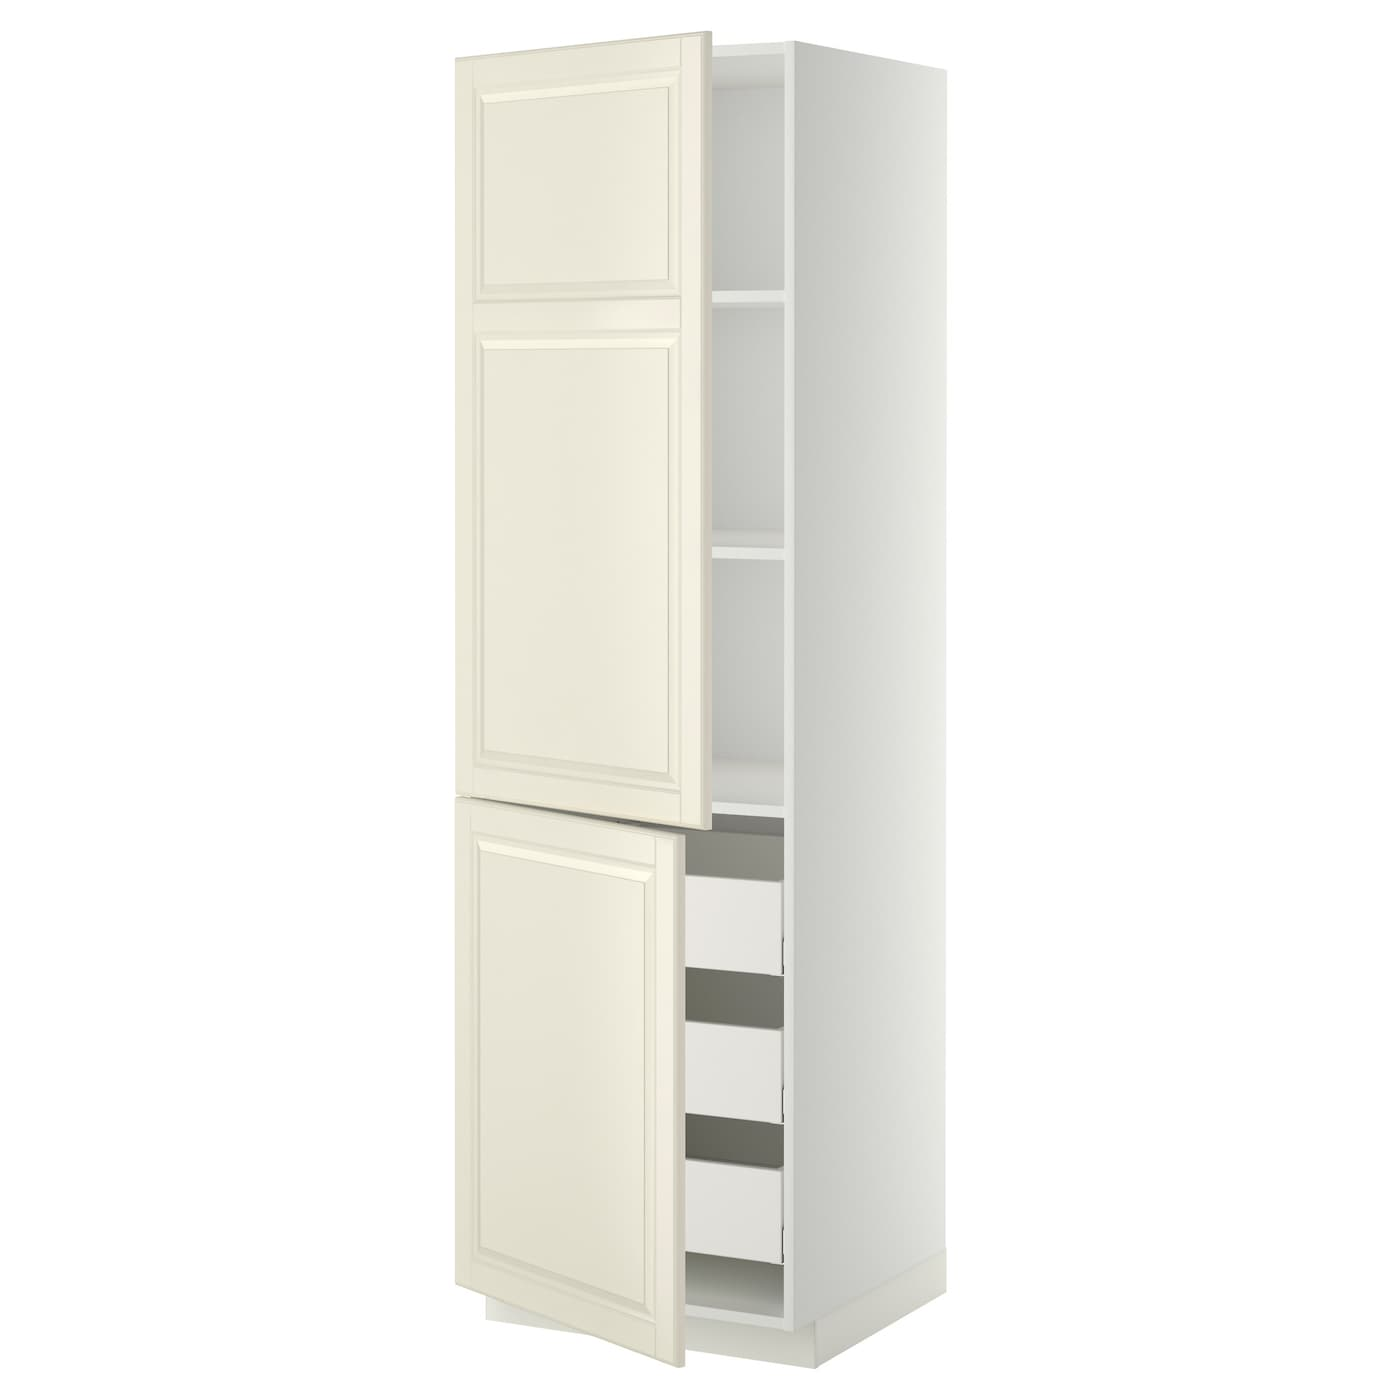 Tall kitchen cabinets tall kitchen units ikea - Mobile tv angolare ikea ...